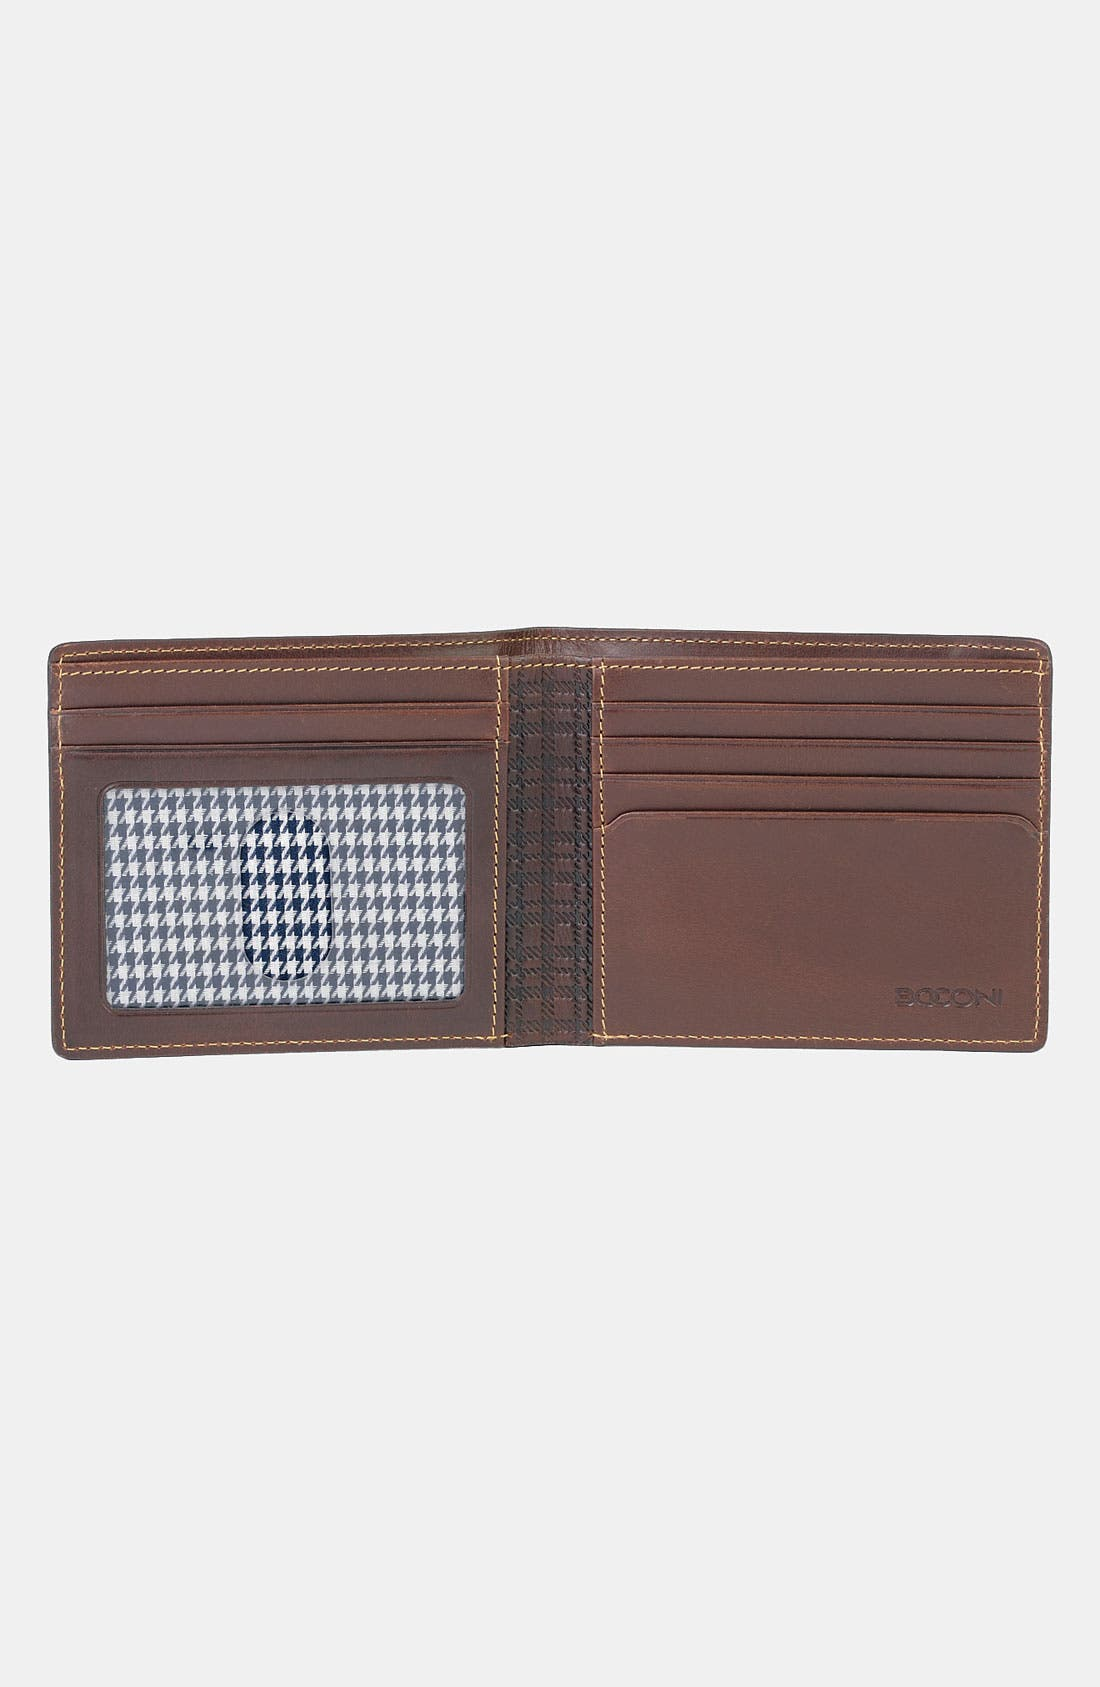 'Bryant' RFID Blocker Slimfold Wallet,                             Alternate thumbnail 5, color,